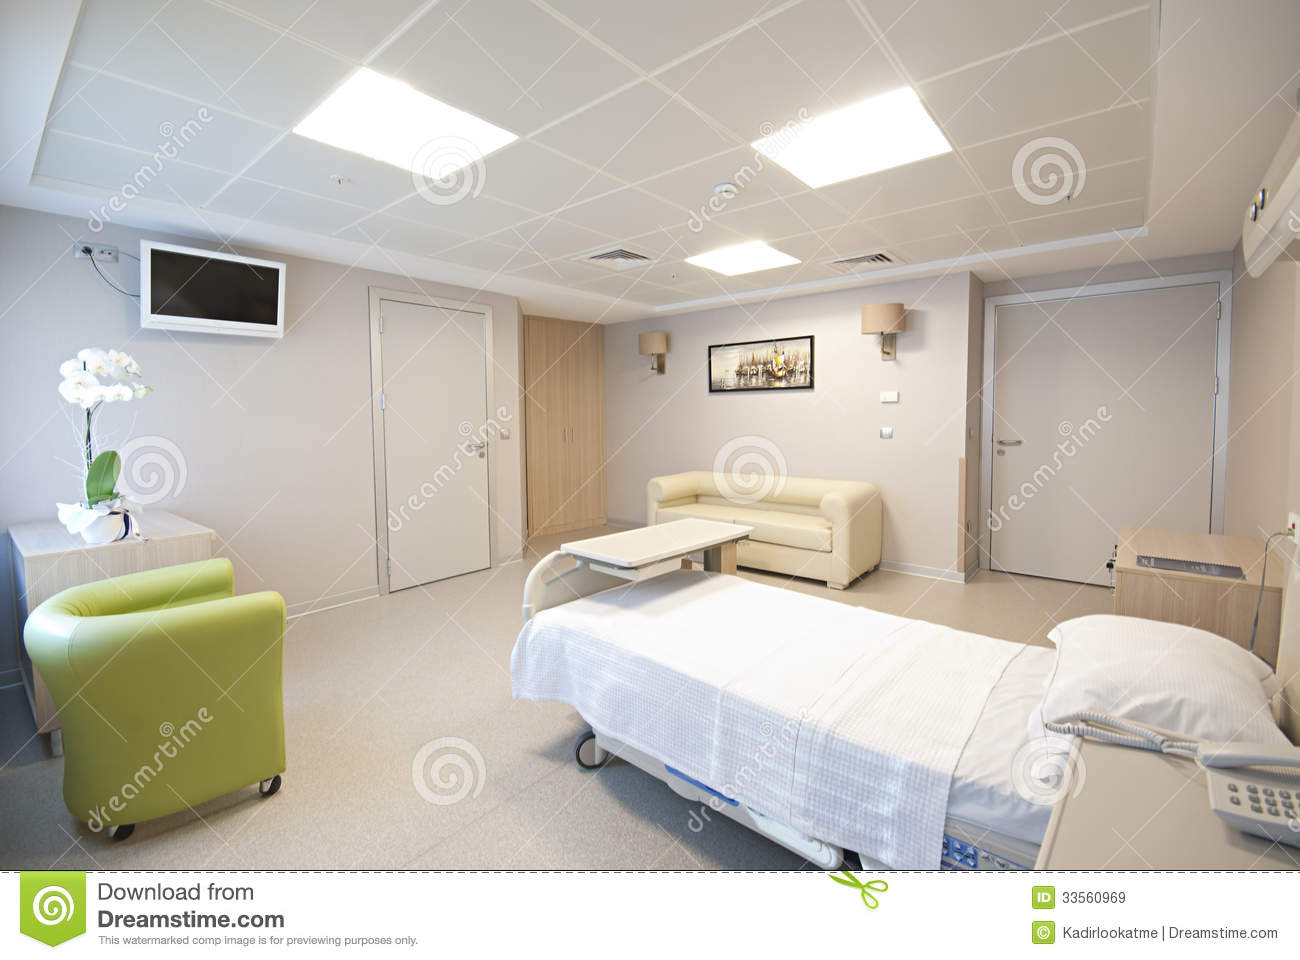 Private hospital room interior stock image image of for Chambre hopital design